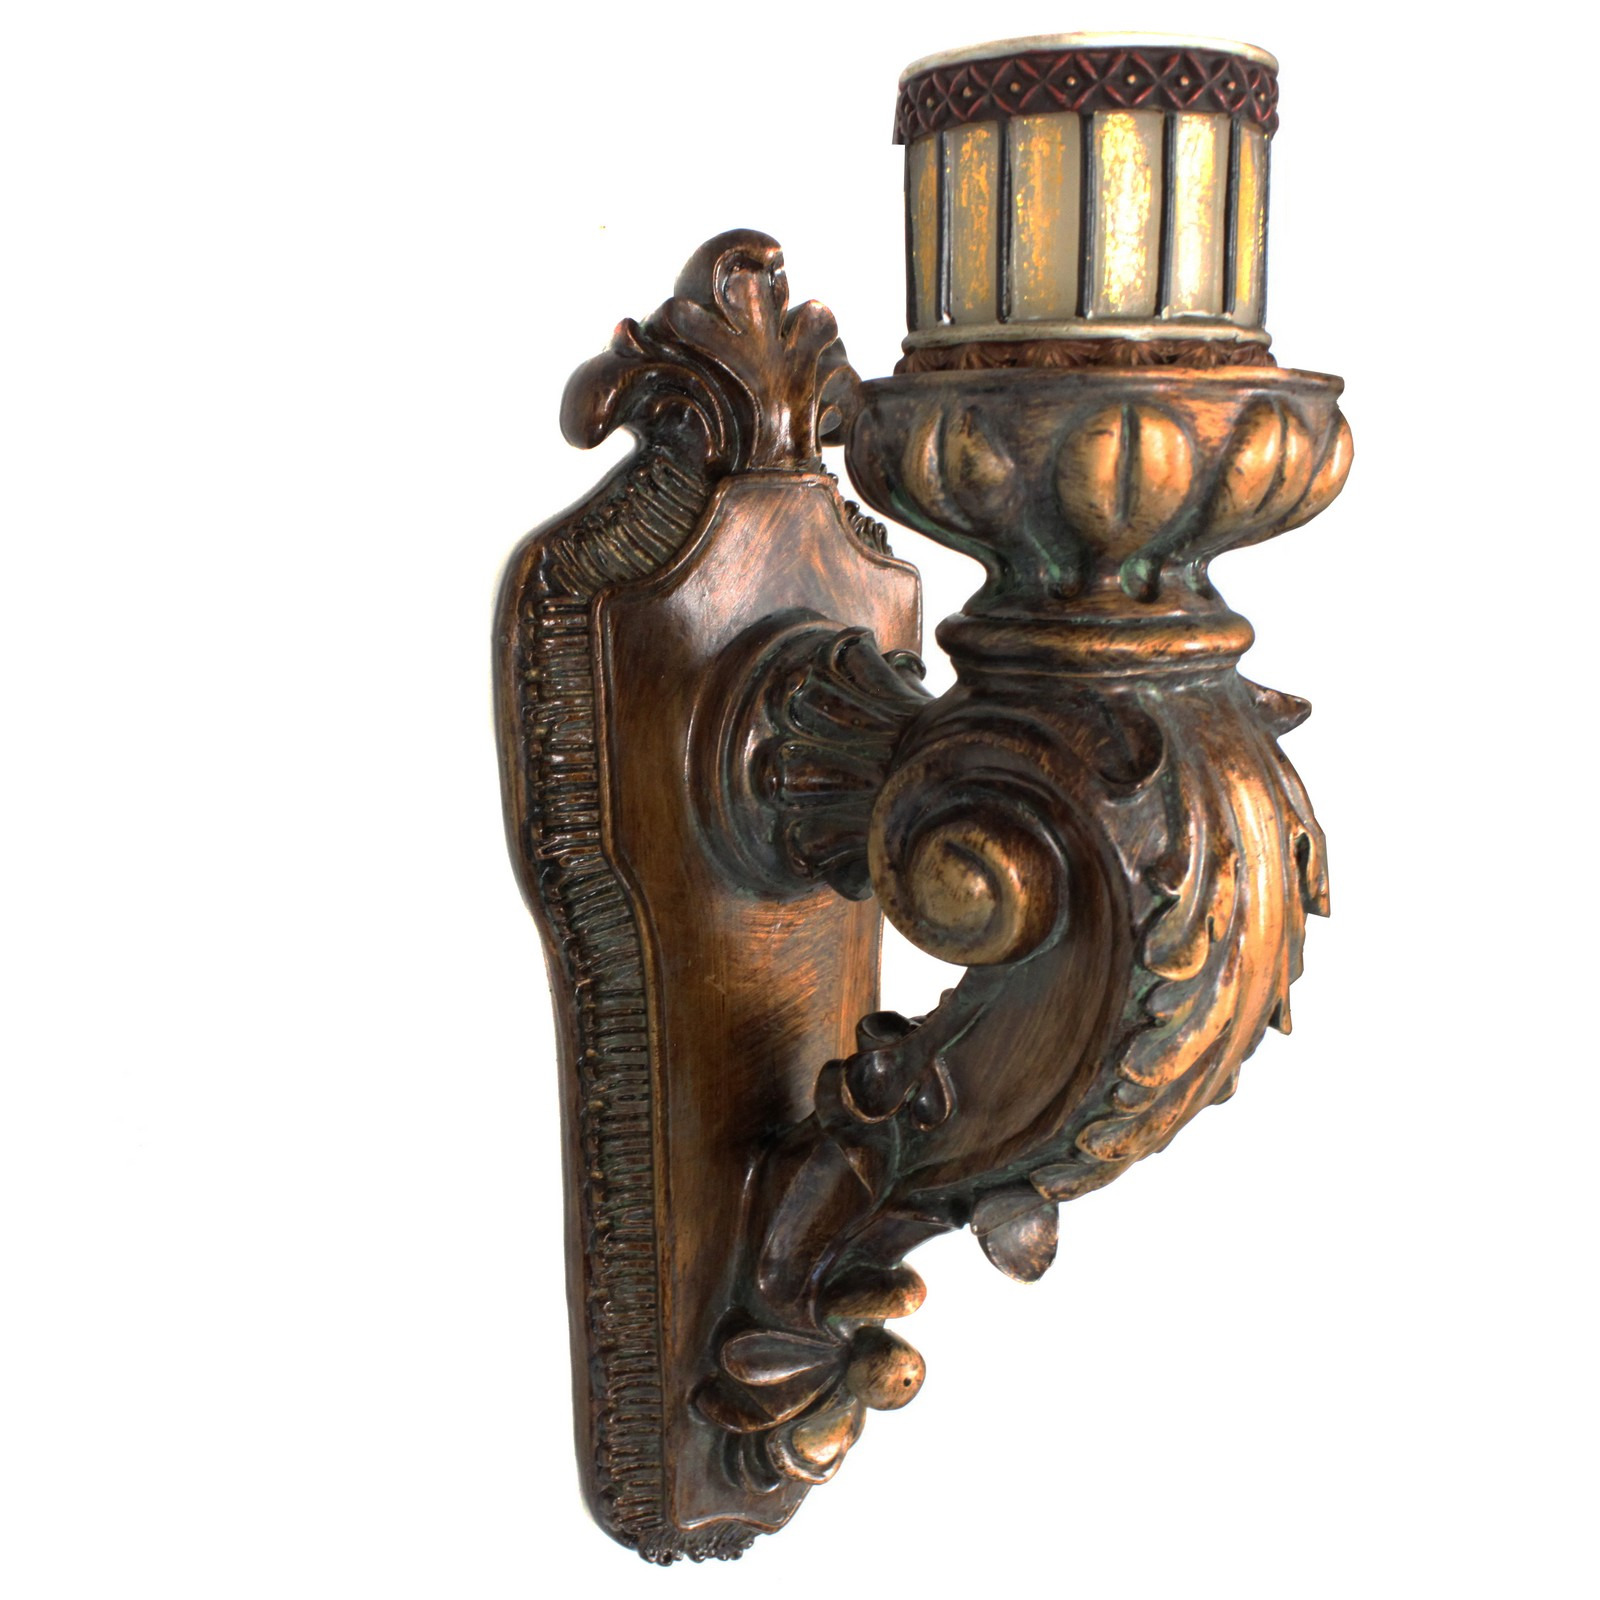 EcWorld Enterprises 7705337 Antique Replica Rusted Wall Sconce Candle Holder by Urban Designs